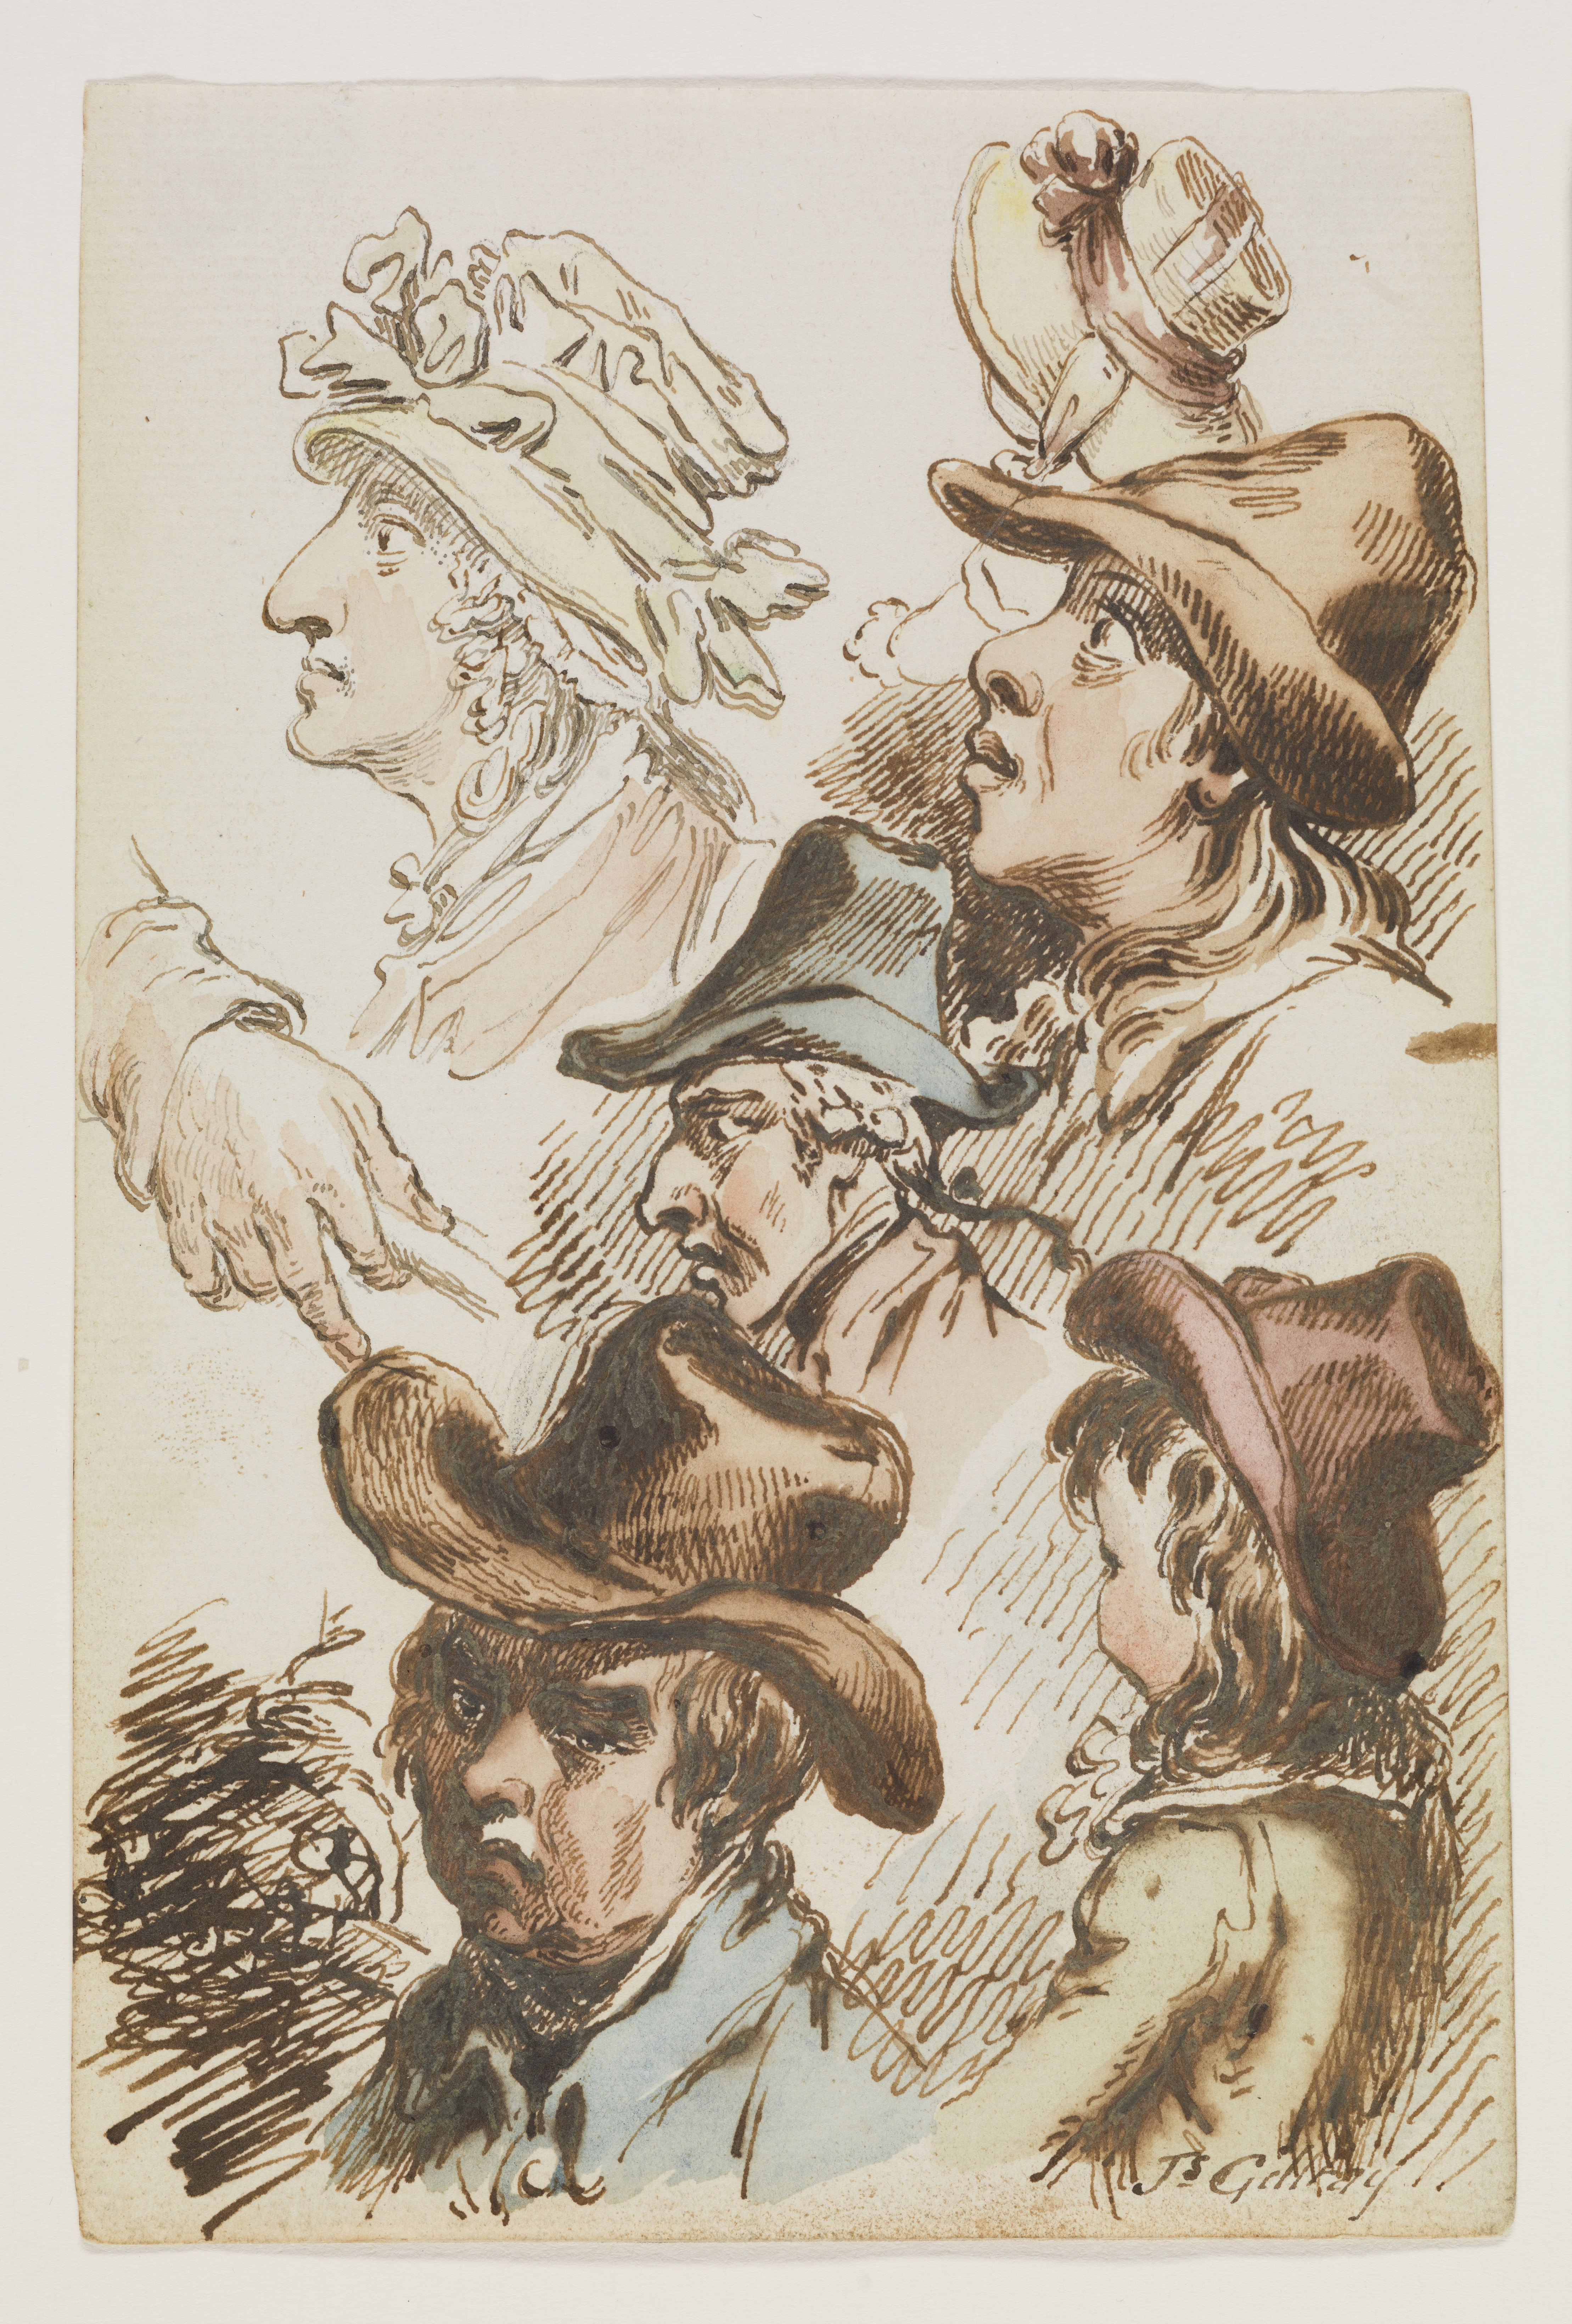 A drawing of six heads mostly in profile, three men, two ladies, and one child, all wearing hats